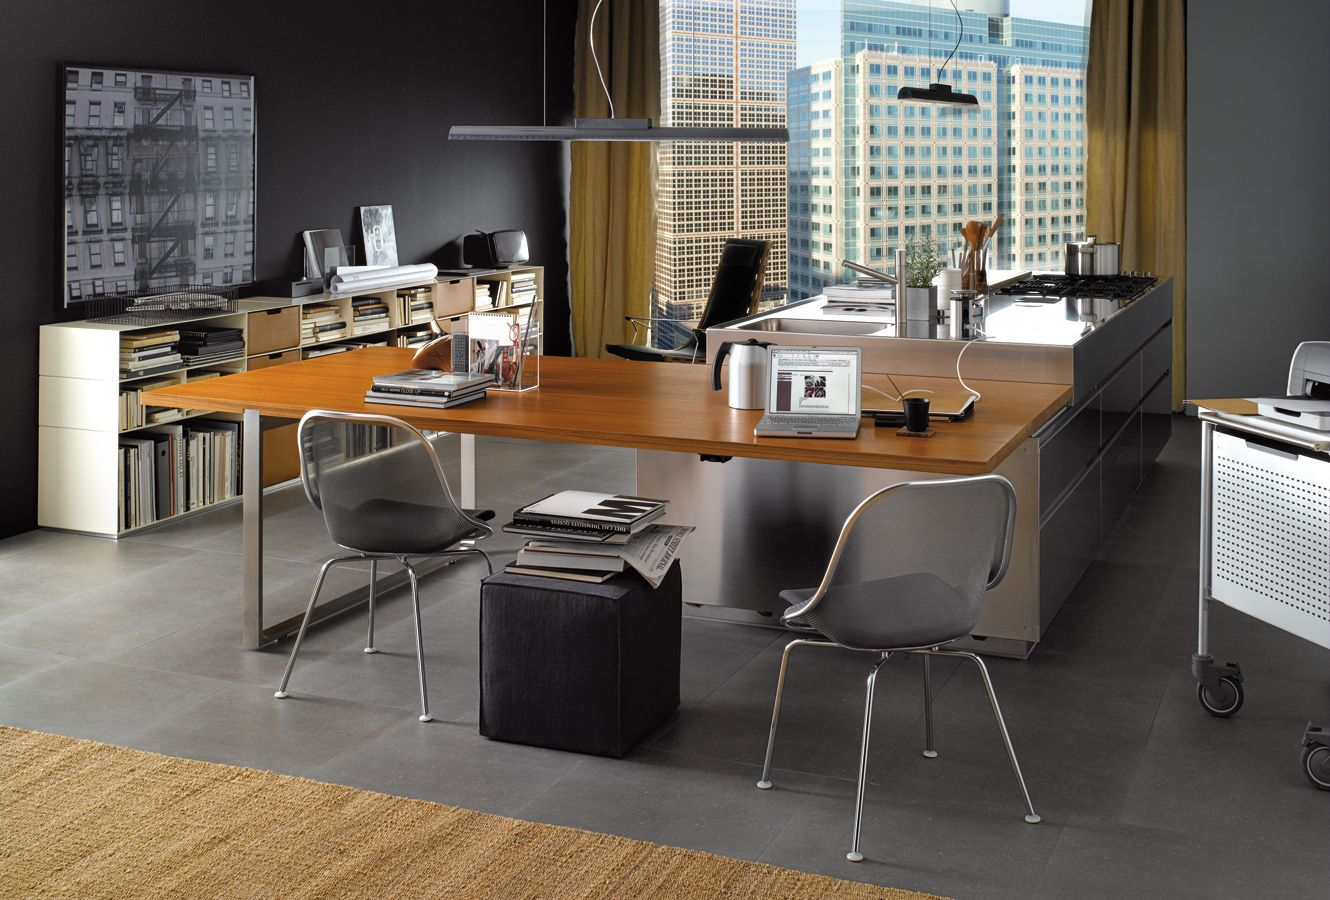 Small Office Kitchen Here We Present Convivium By Arclinea Designed In The Office